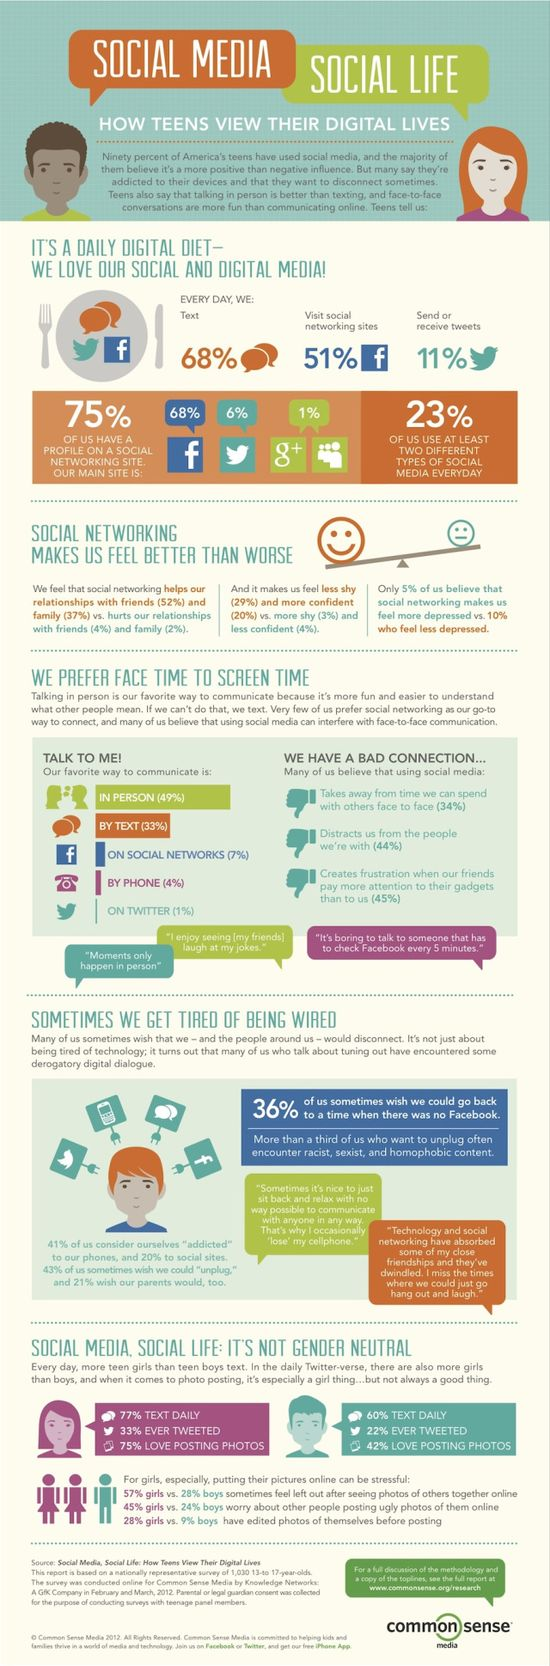 Social Media, Social Life - How Teens View Their Digital Lives - Common Sense Media 2012